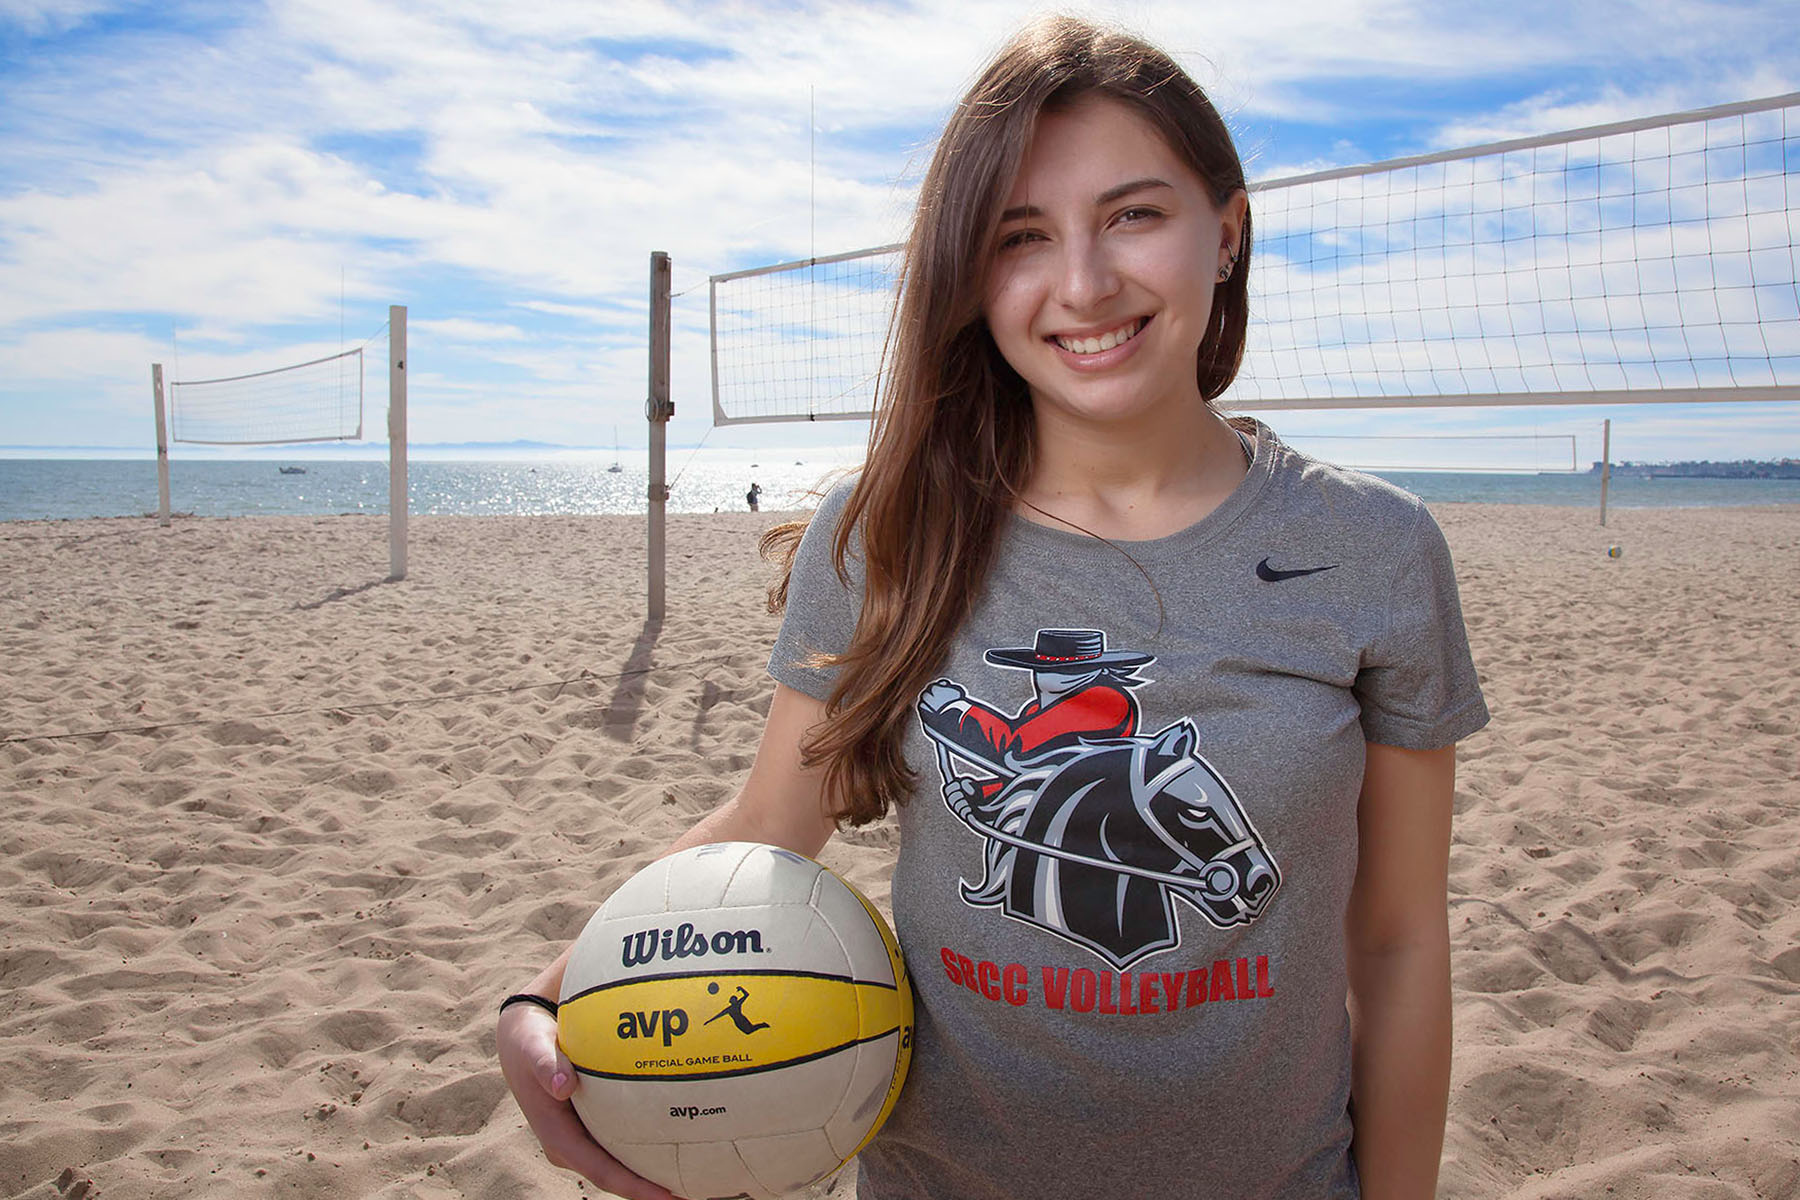 Freshman Claire Bagdasar, the starting libero for the City College women's volleyball team, on Feb. 15, at Santa Barbara East Beach. Bagdasar has been playing volleyball since she was young and dedicates most of her time to it.